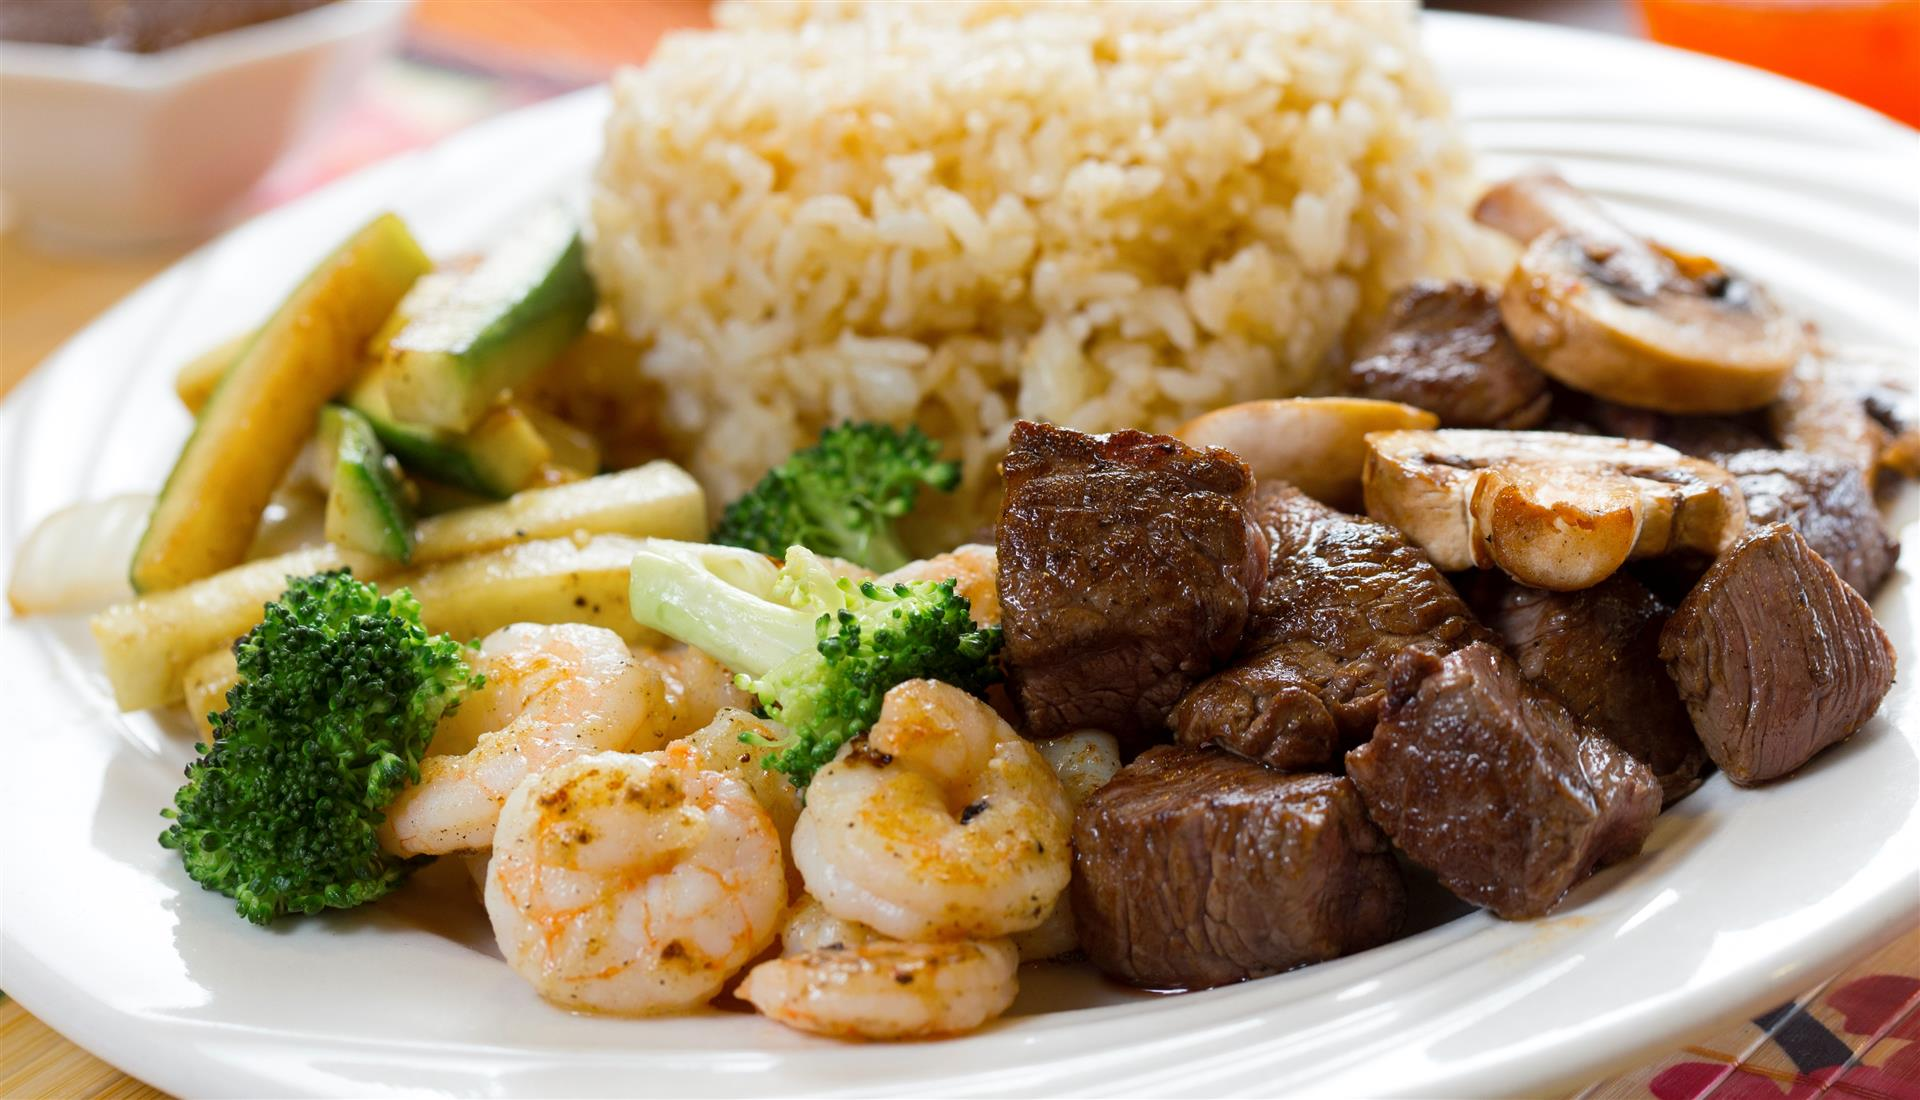 cooked beef and shrimp with a side of vegetables and rice